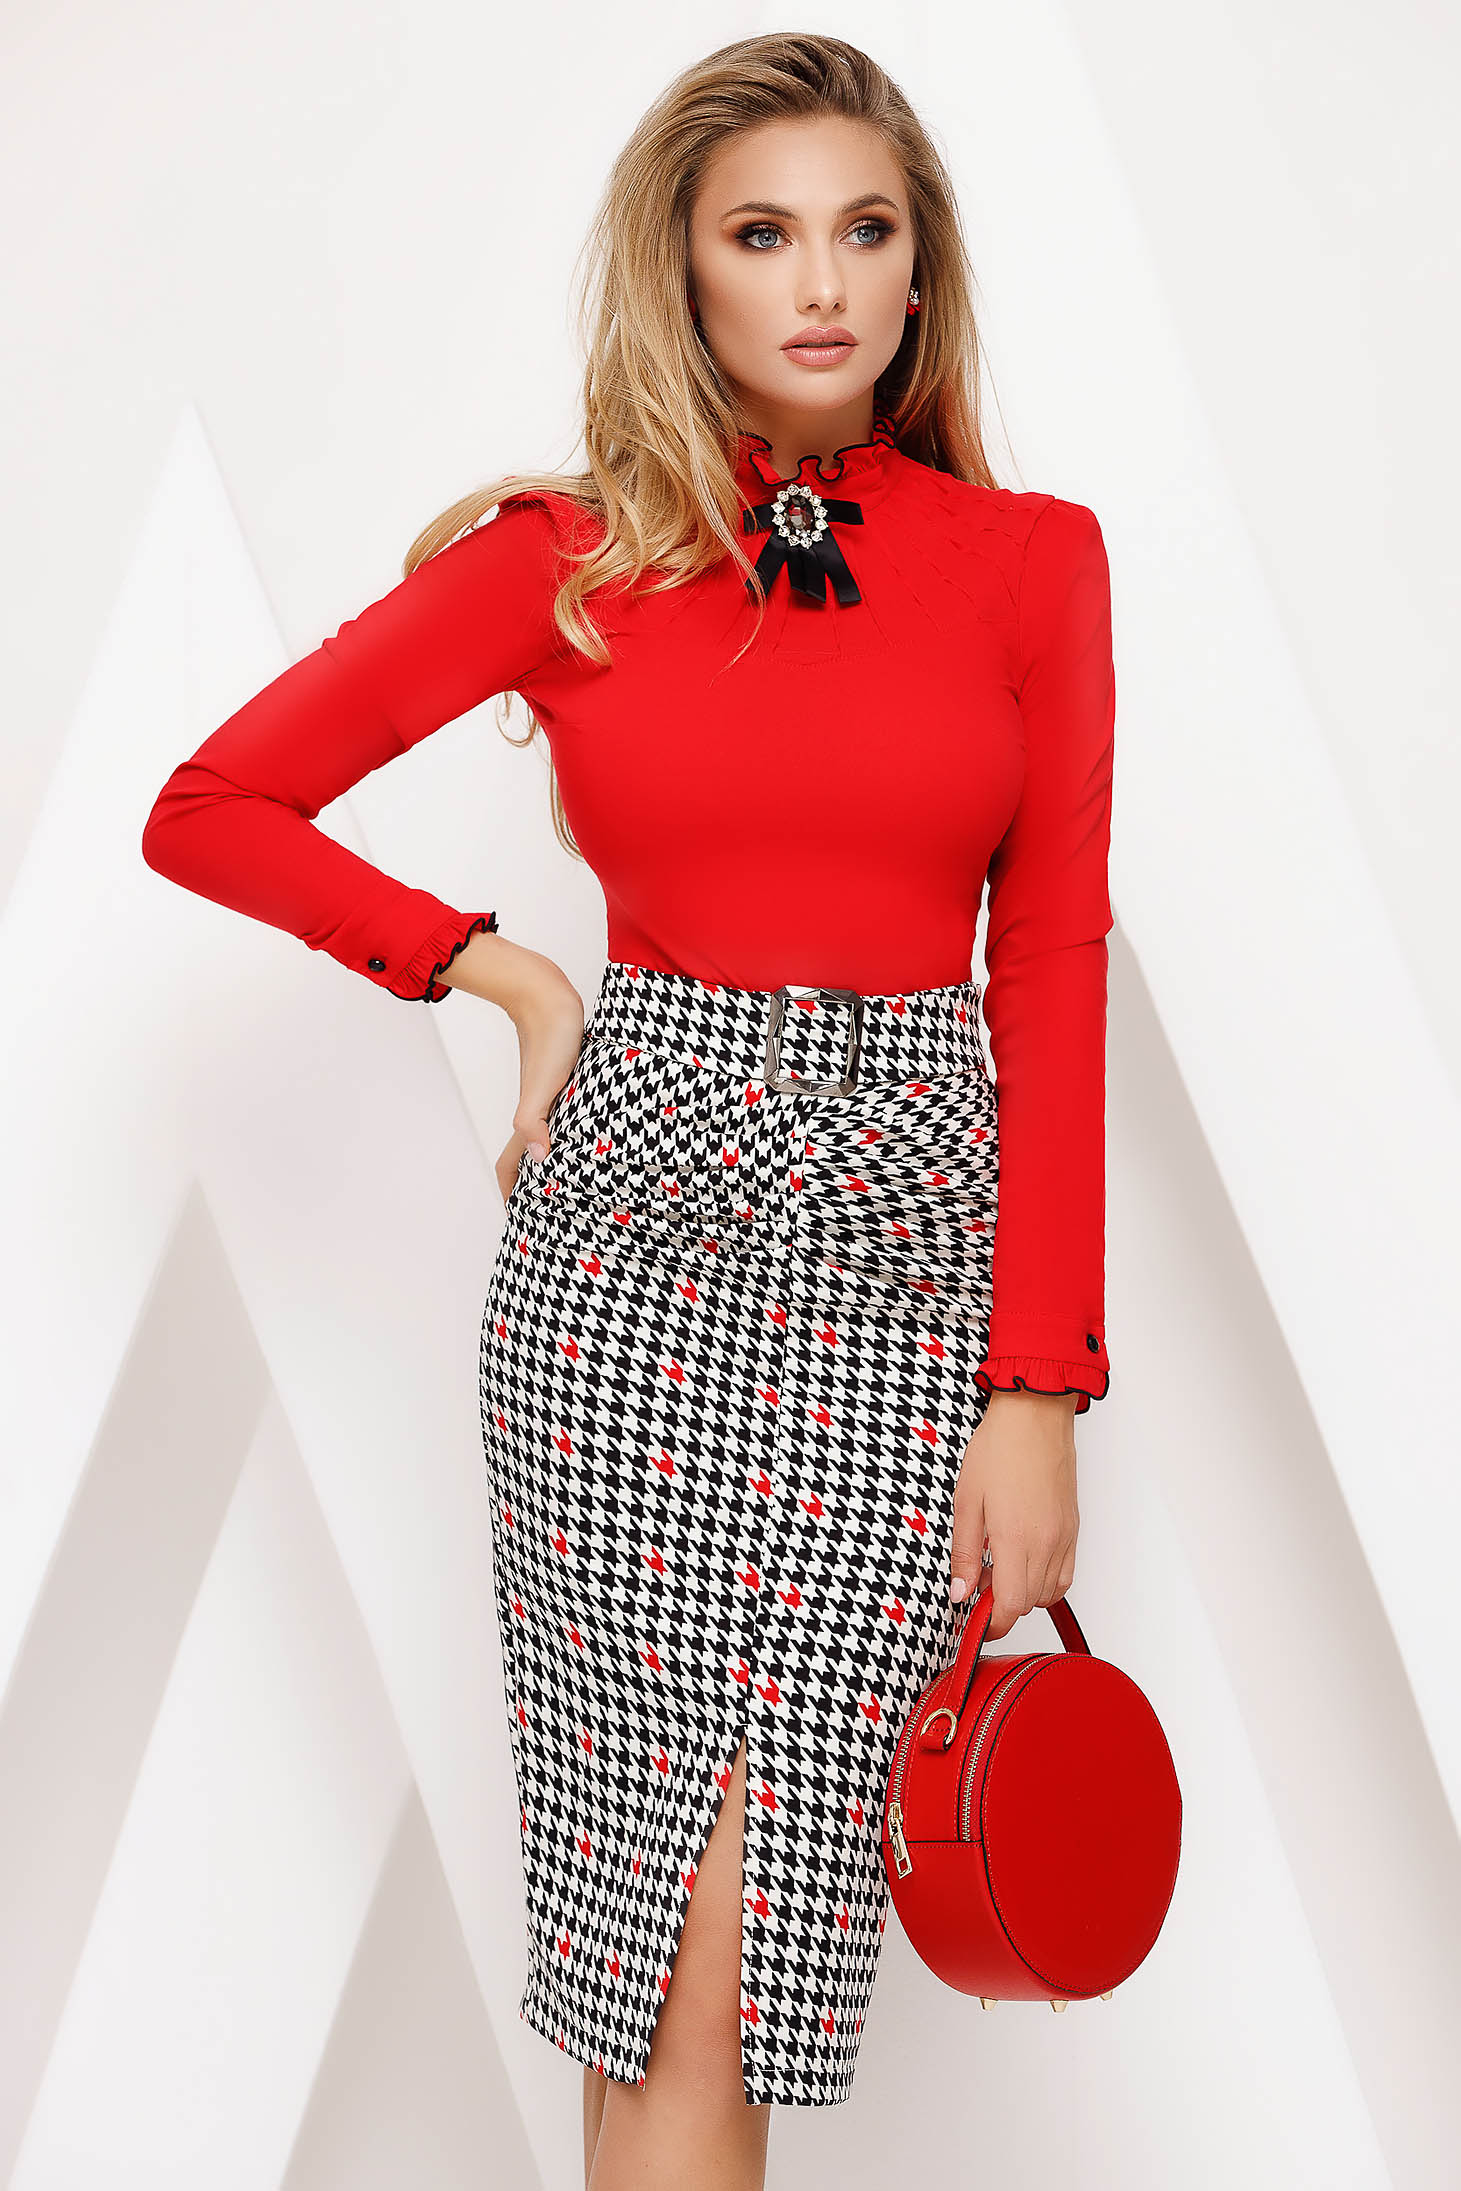 Fusta Fofy rosie office tip creion cu talie inalta din material usor elastic dogtooth